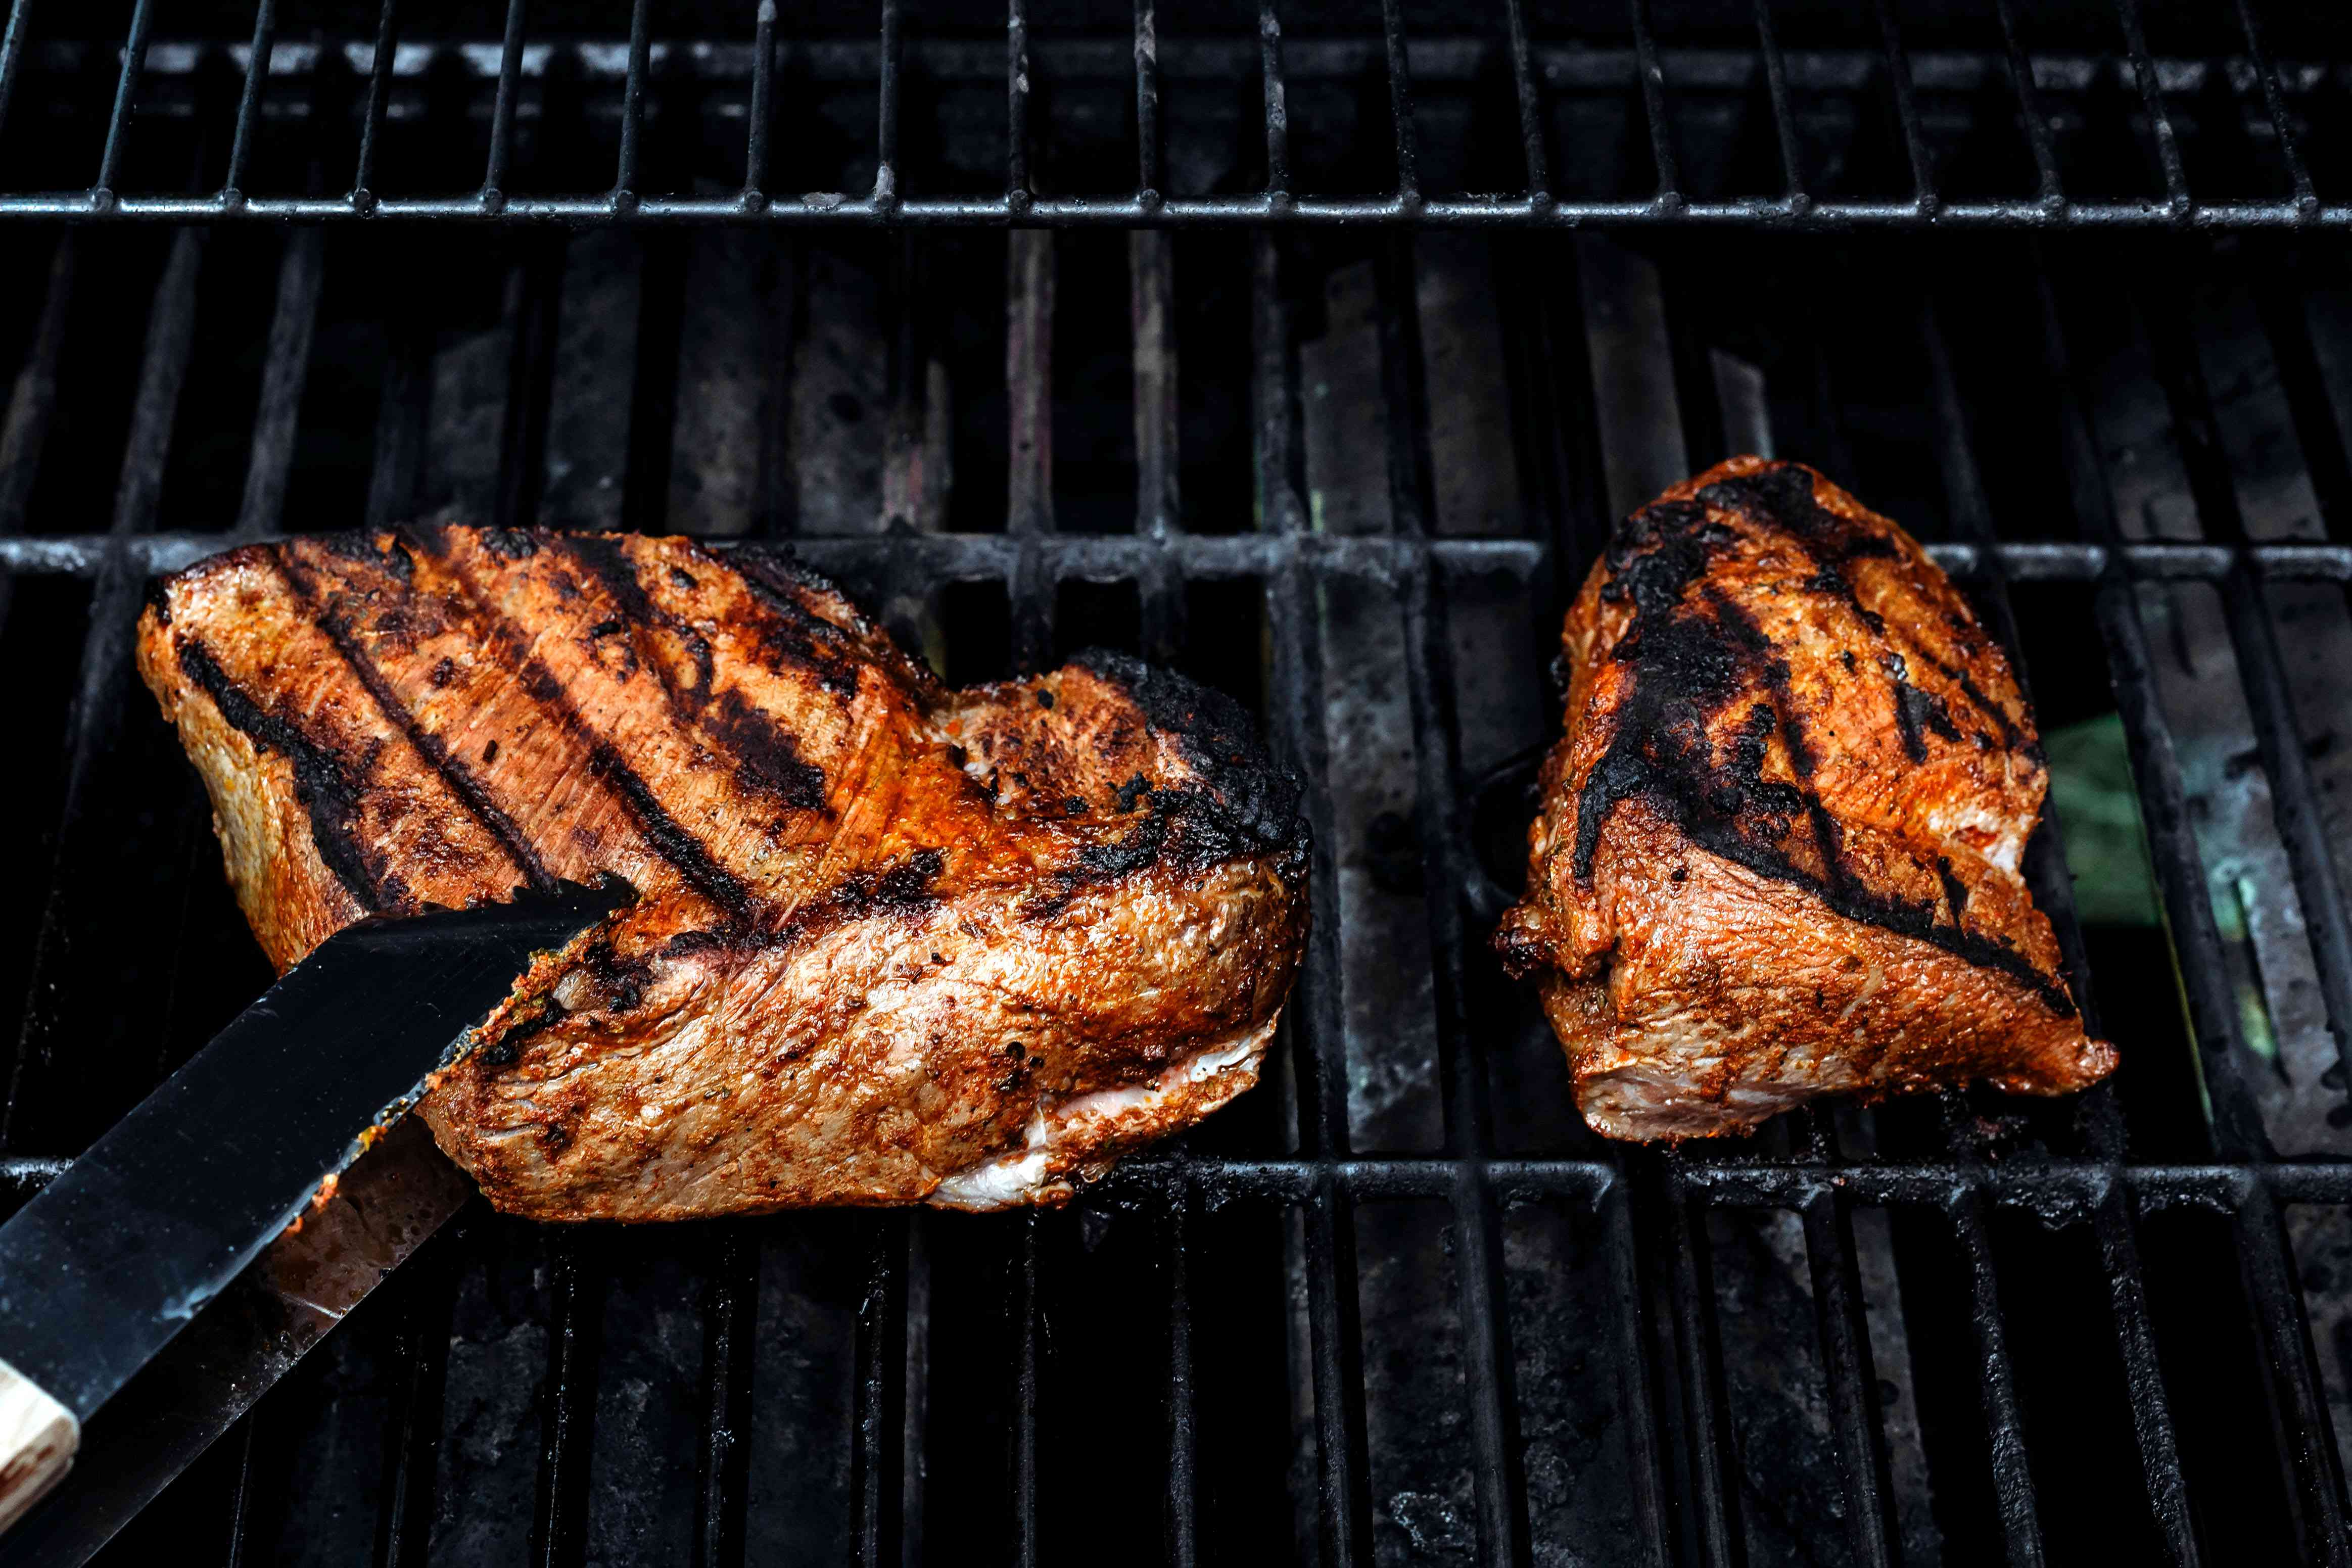 steak cooking on the grill